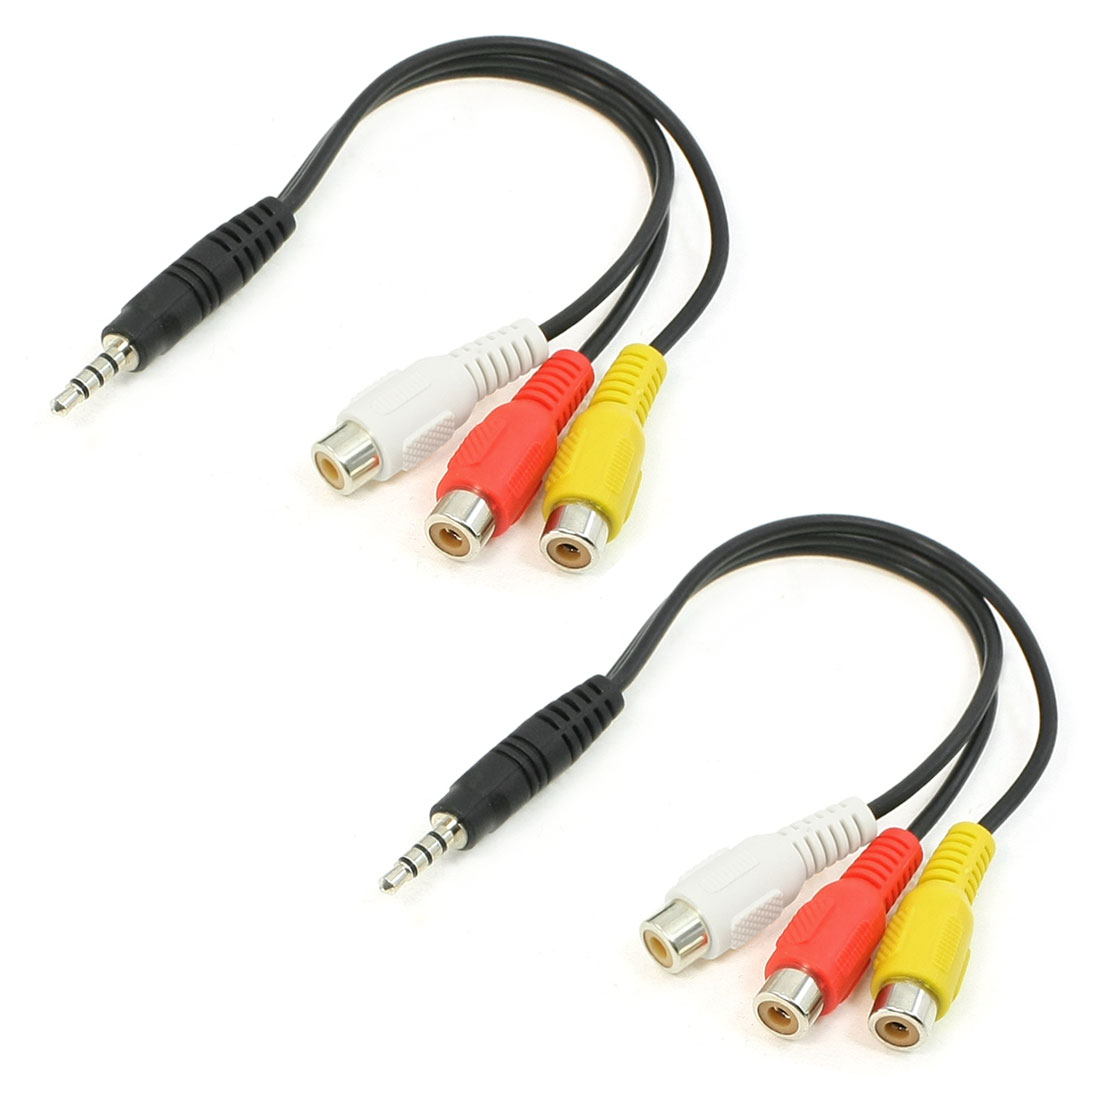 2Pcs 3 RCA Female Audio/Video Connector to 3.5mm Jack Plug Adapter Cable